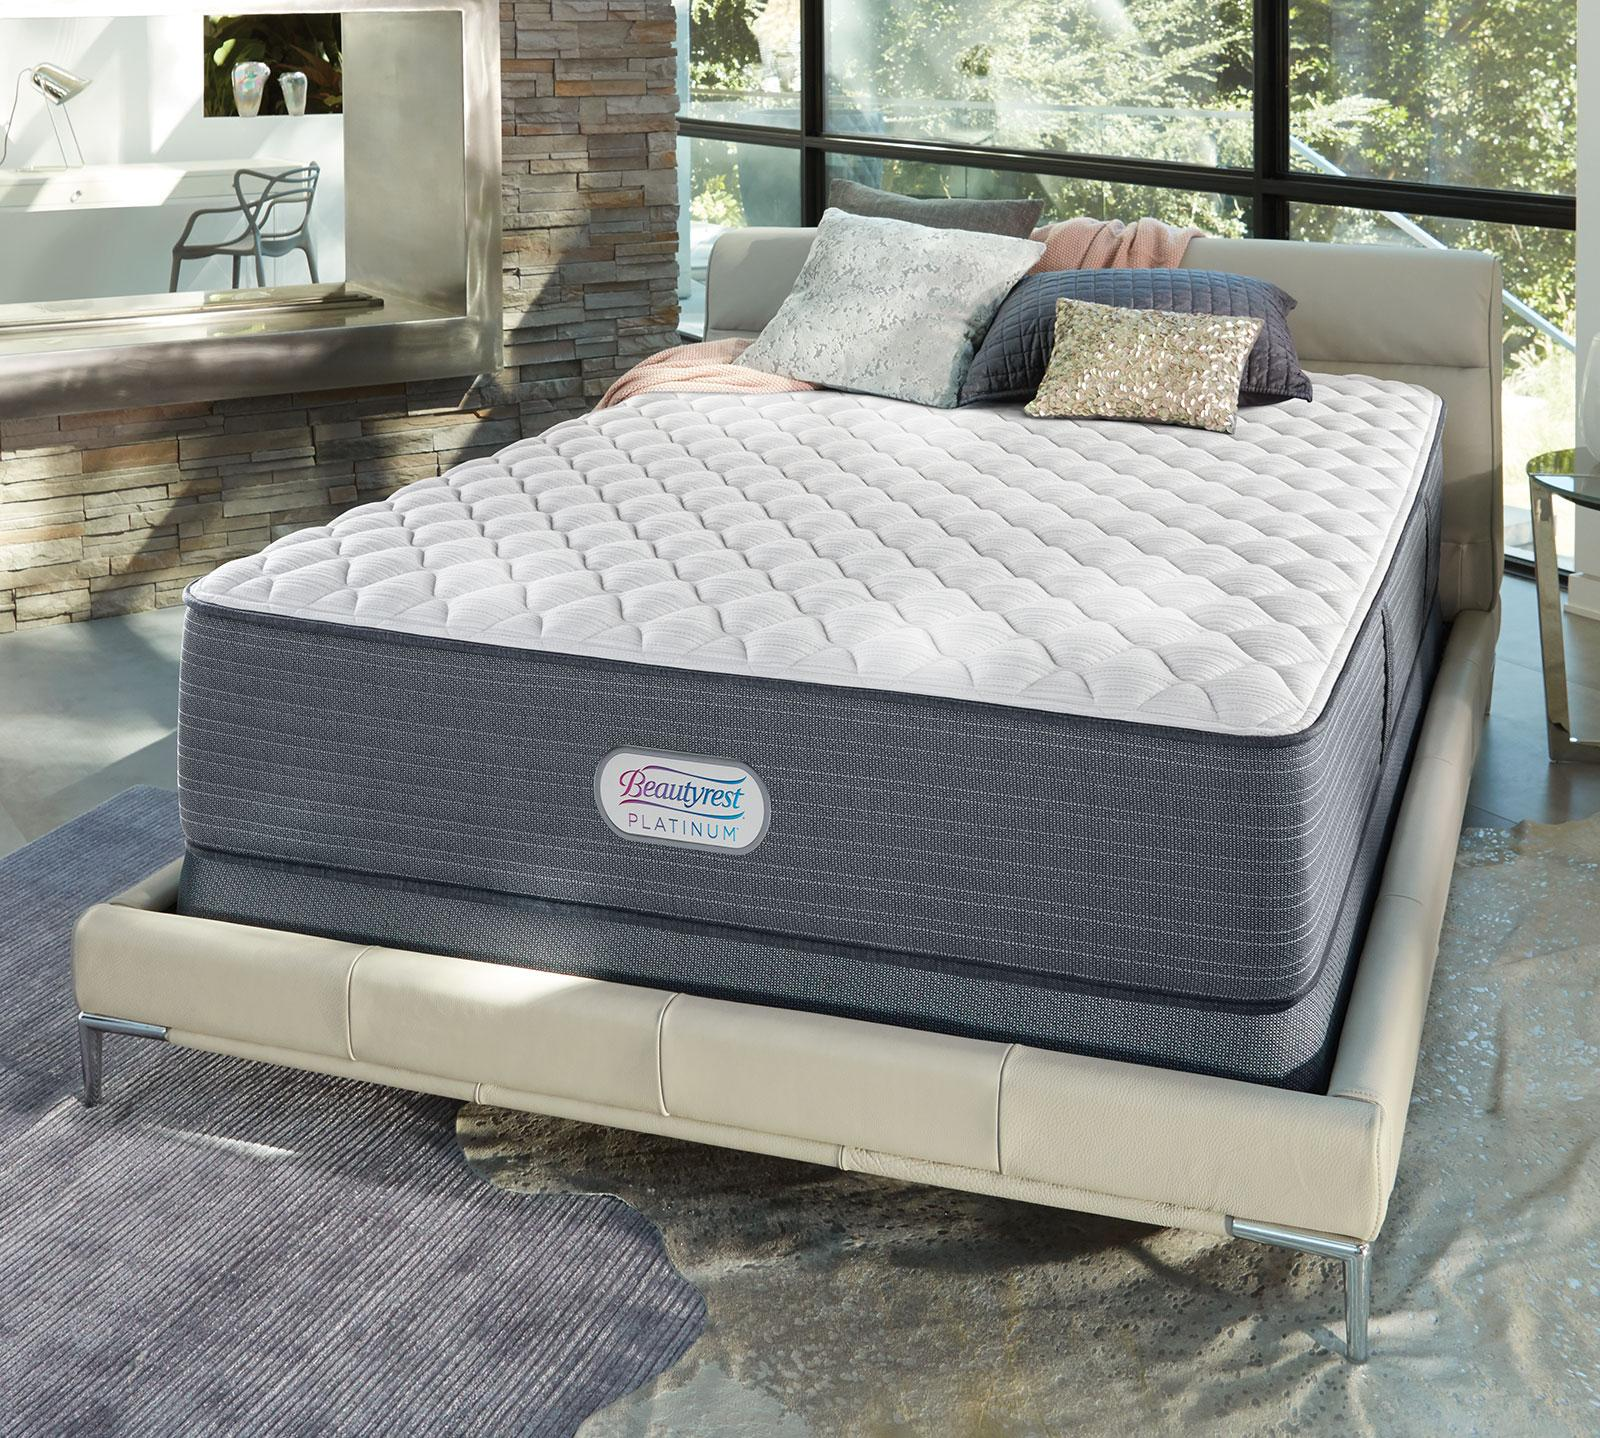 Sealy Posturepedic Backcare Elite Mattress Platinum Mallory 12 5